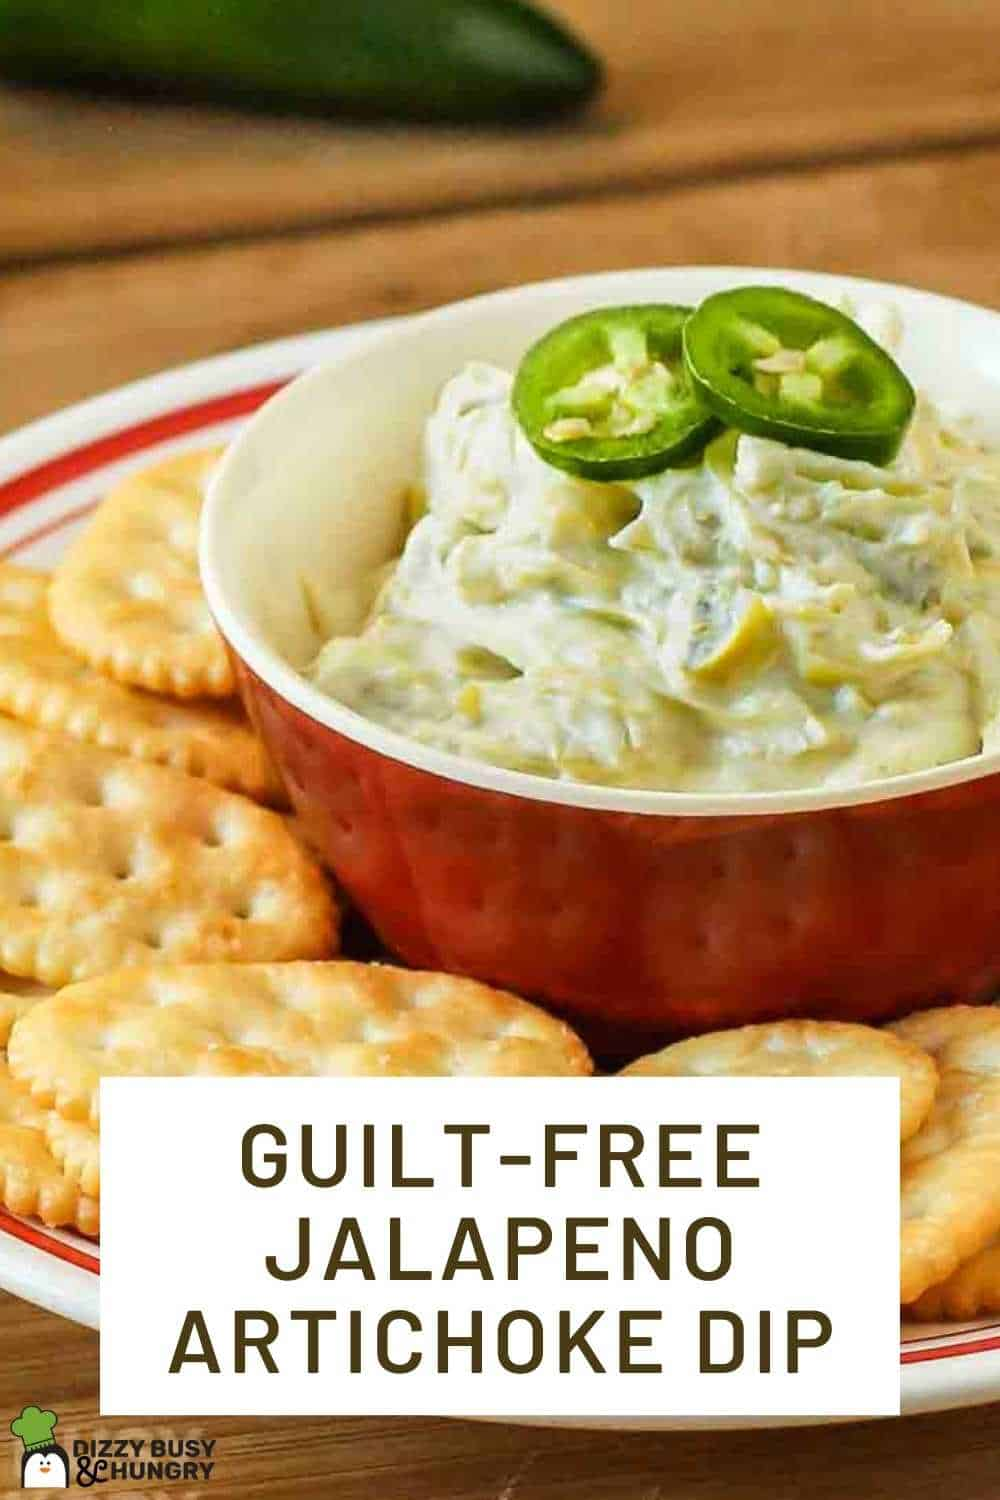 Side view of jalapeno artichoke dip in a red bowl surrounded by a ring of crackers on a red and white plate.